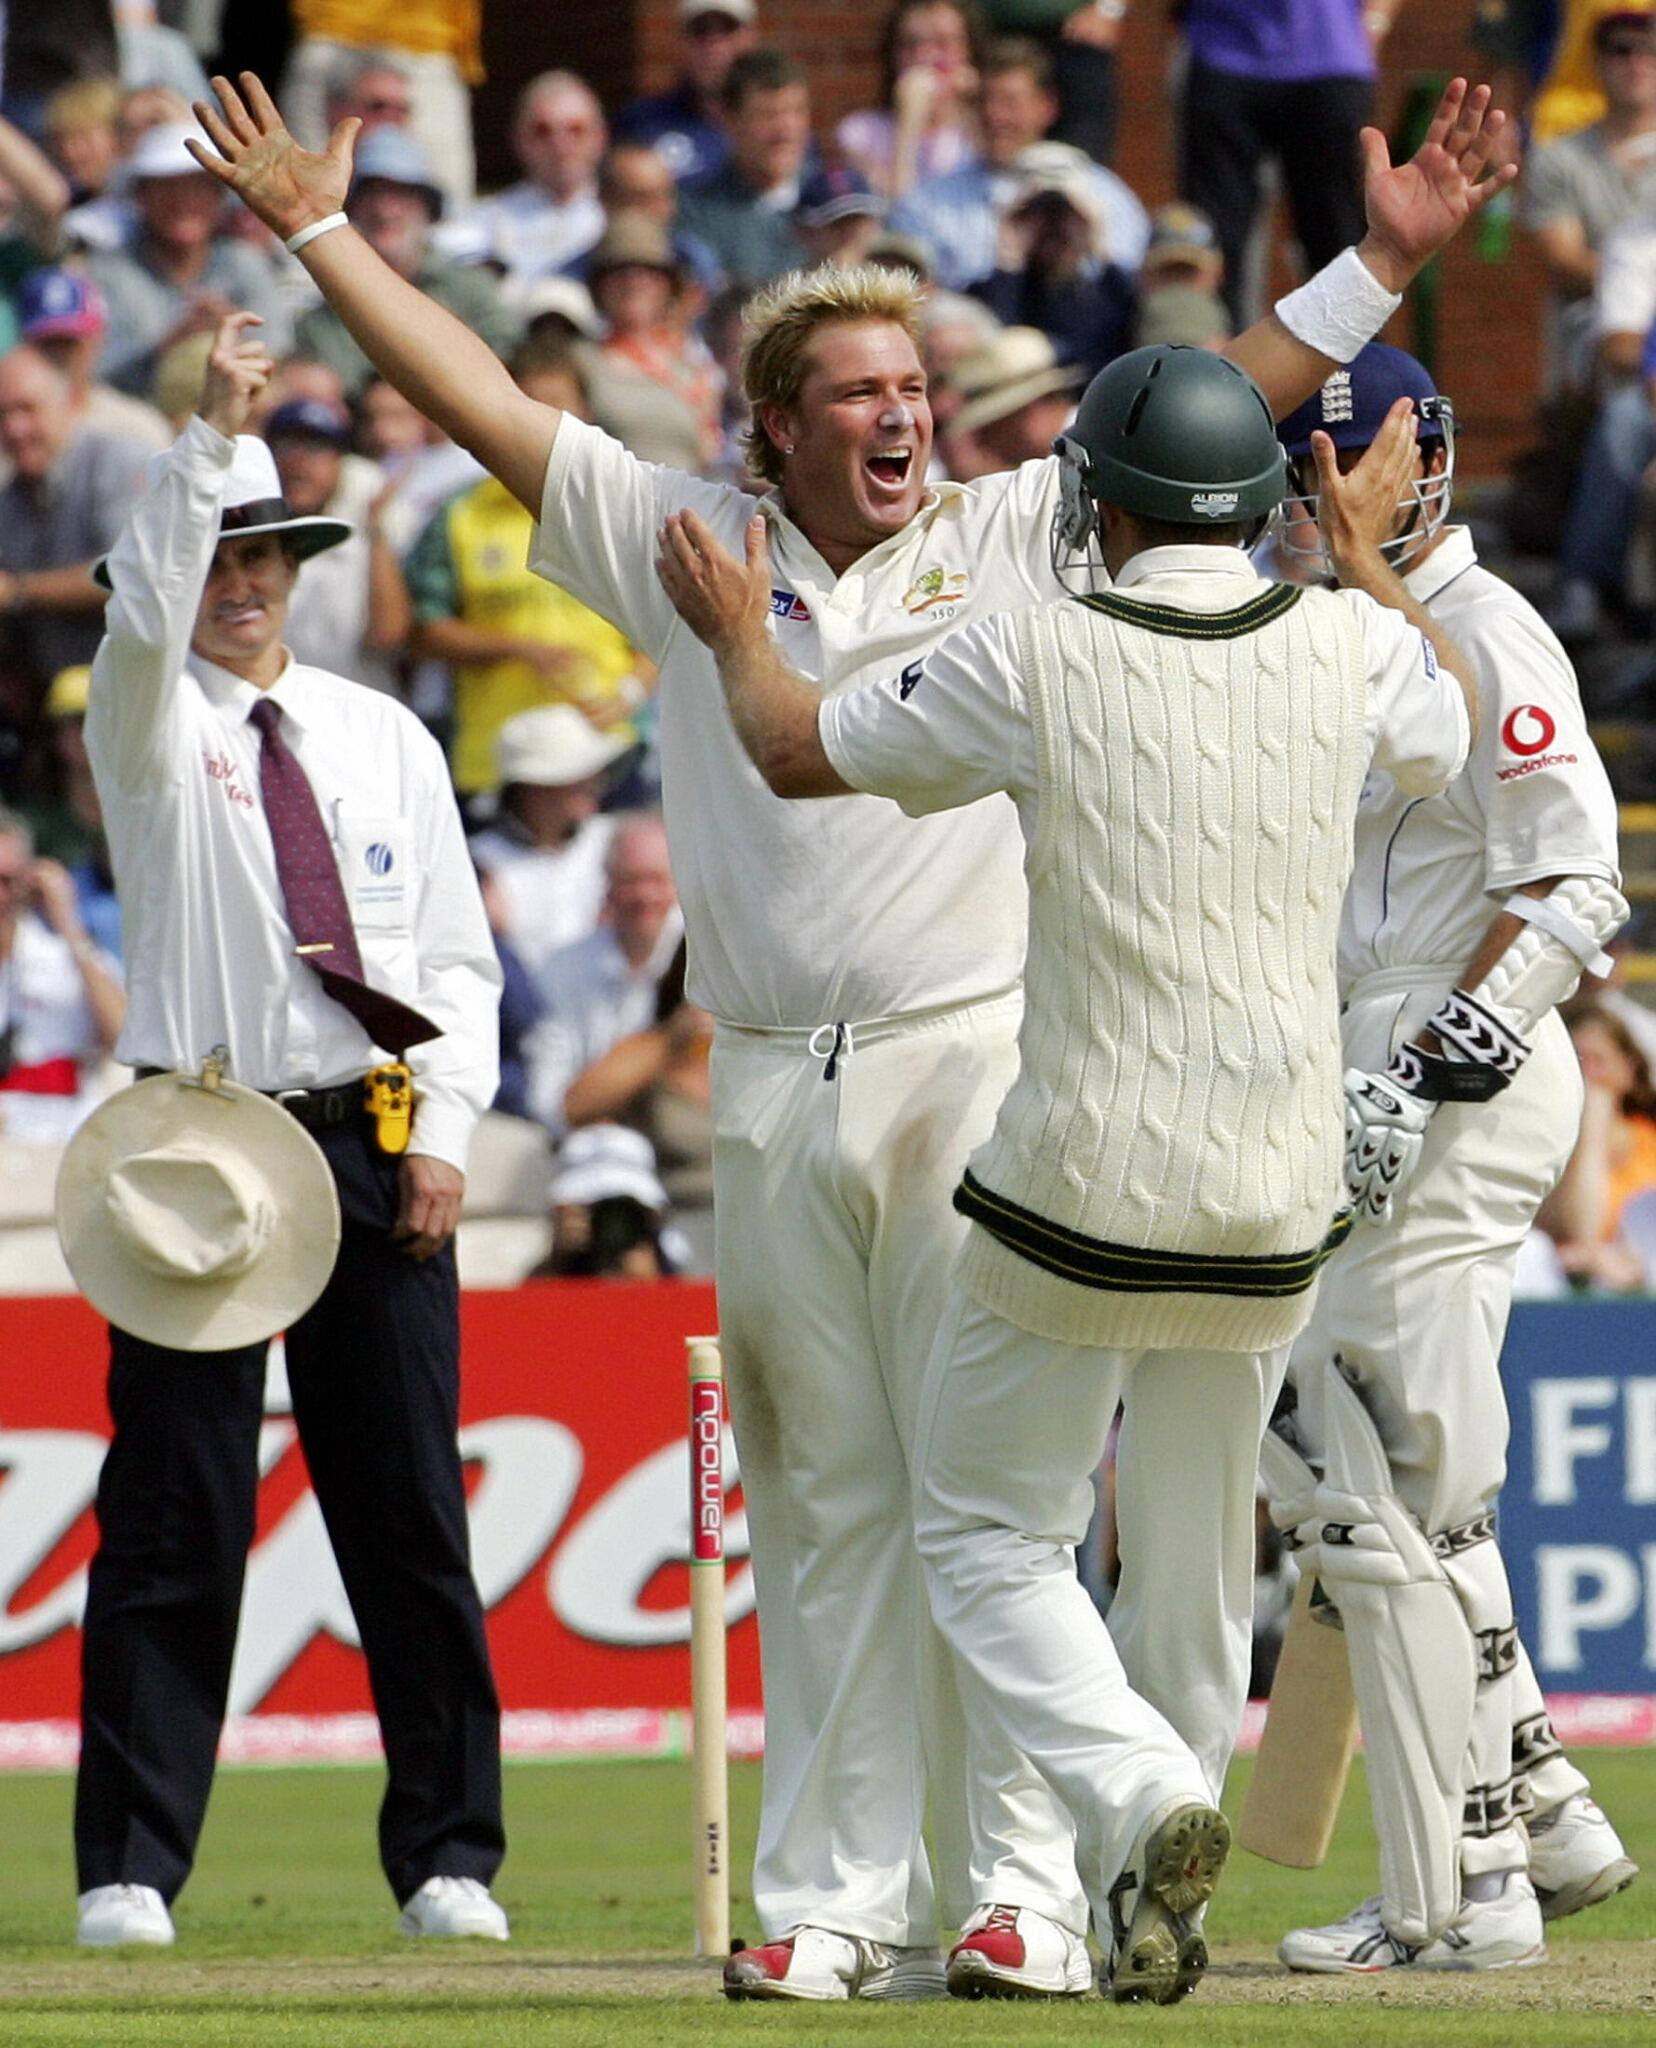 On this day in 2005, @warne888 took his 600th Test Wicket, that of Marcus Trescothick #Ashes #cricket #didyouknow http://t.co/tCao5MNjws